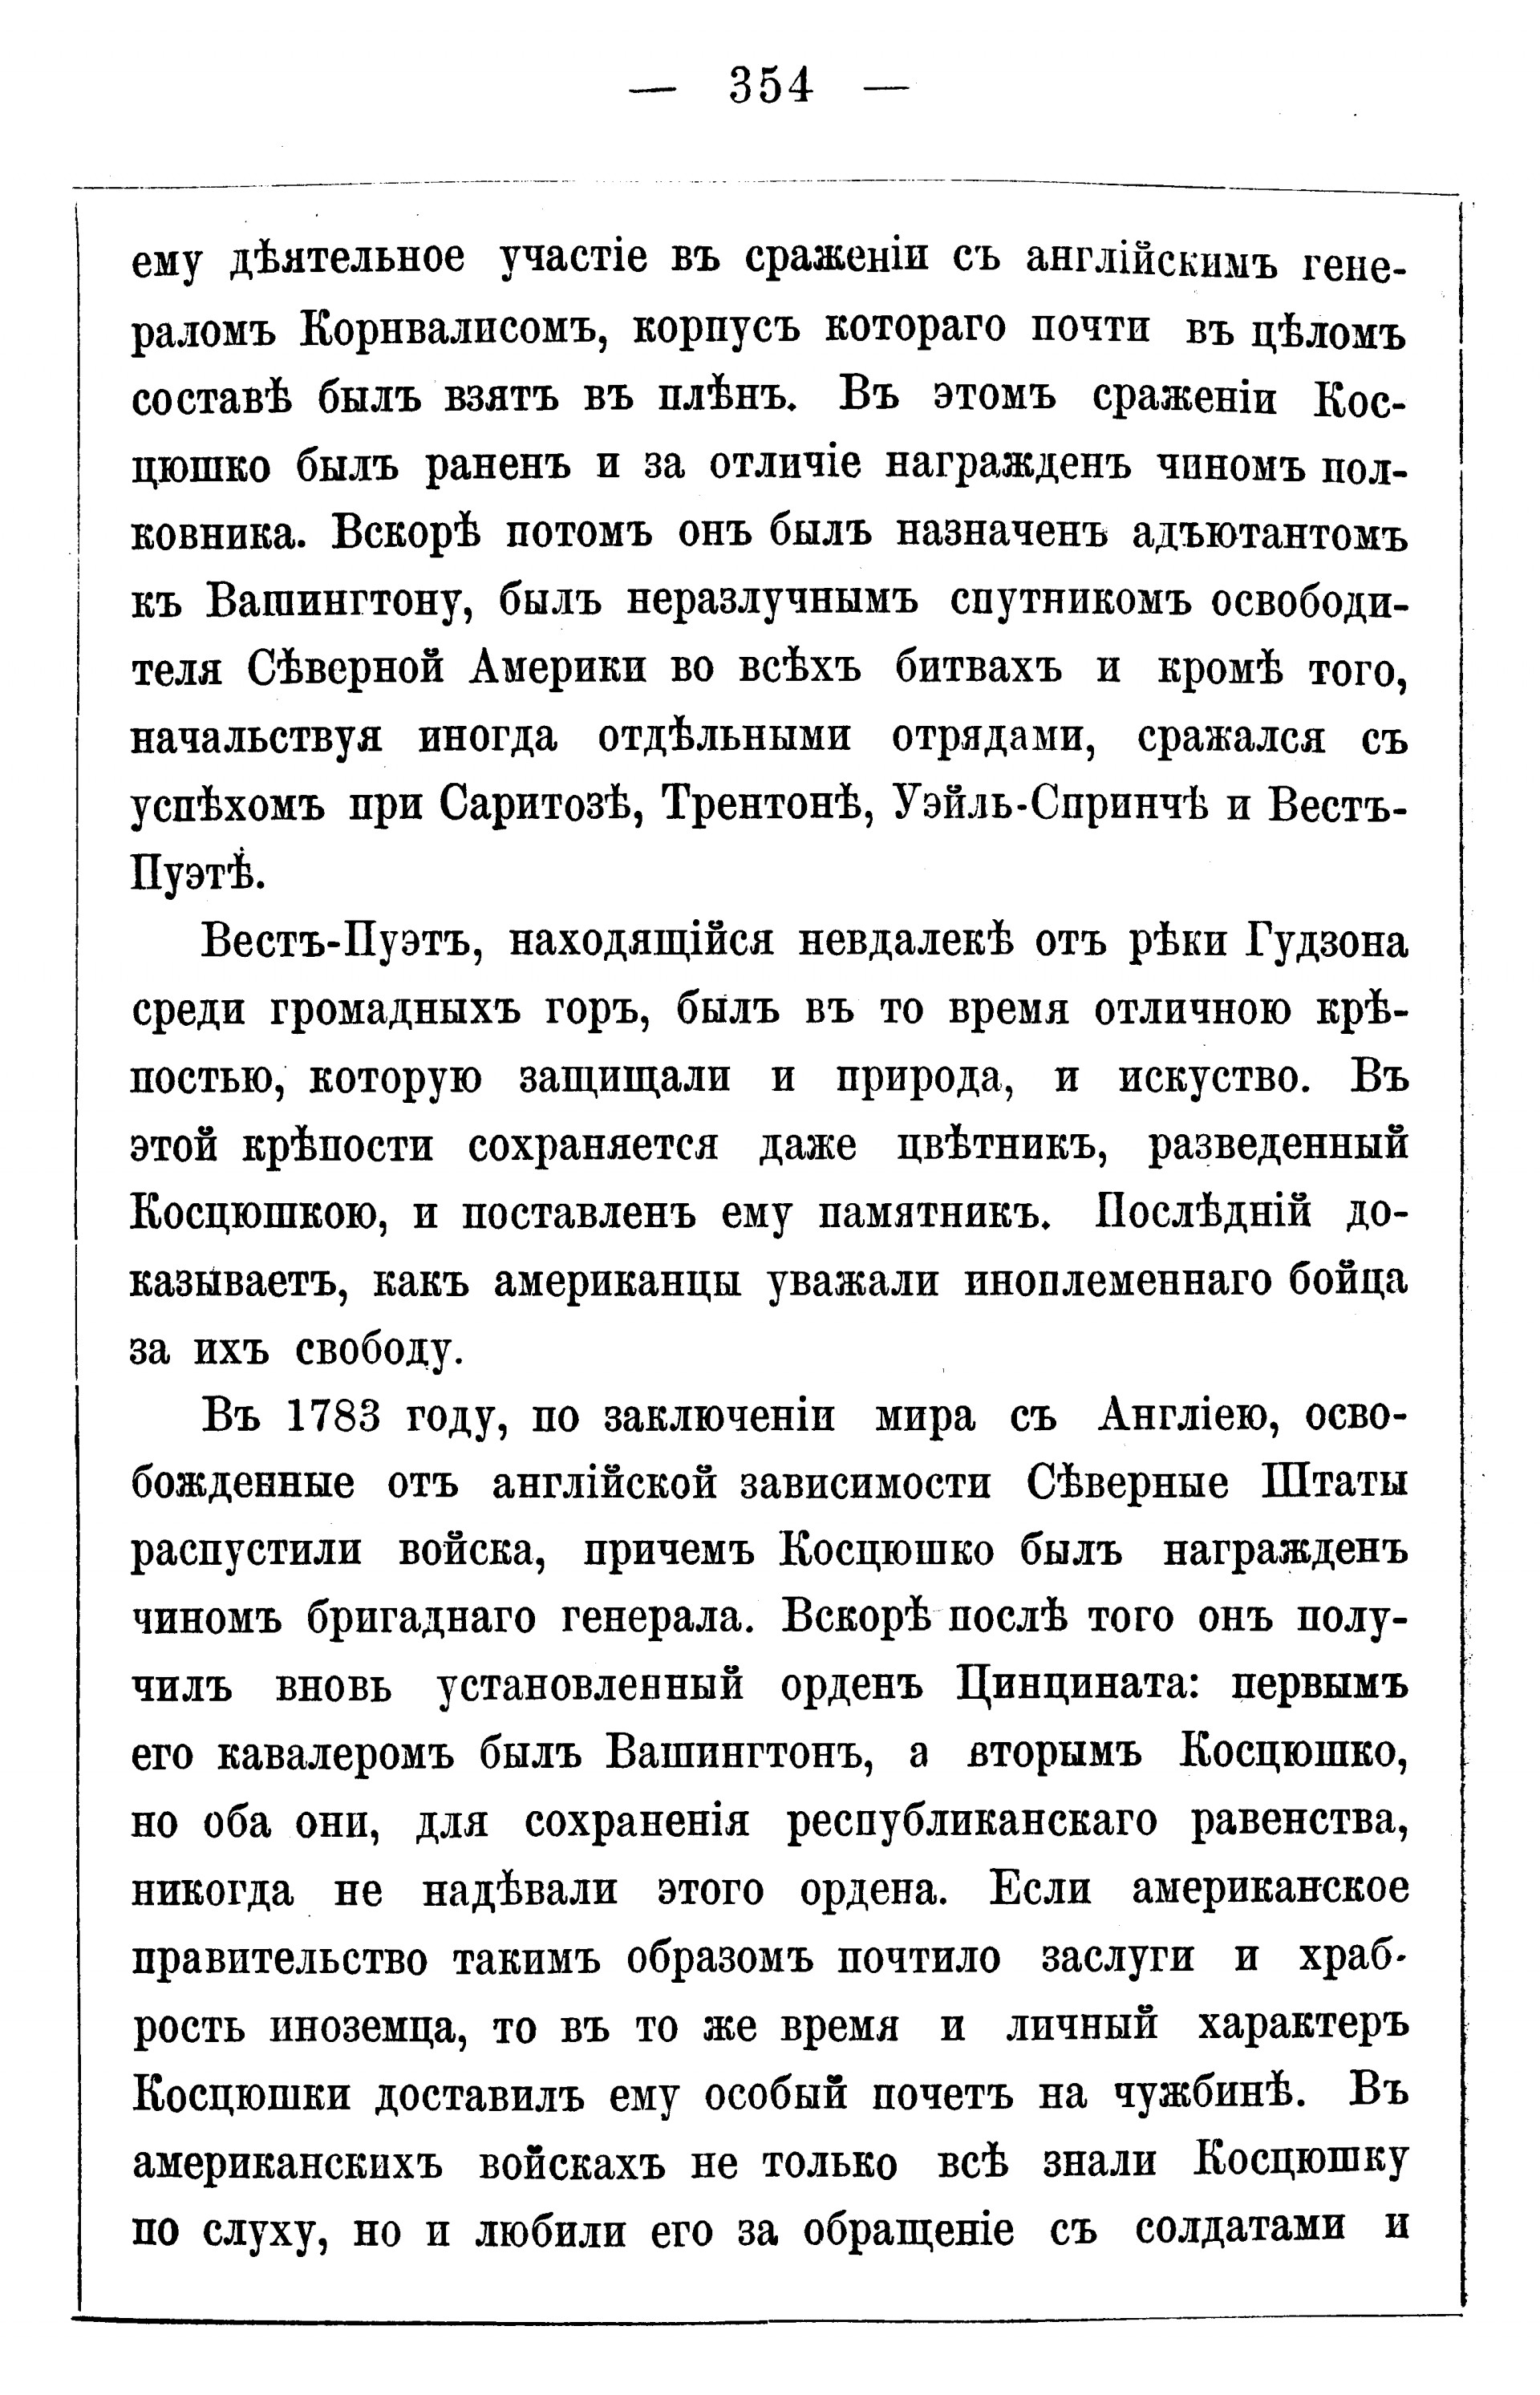 016 Essay Example Childhood Evgeny Petrovich Karnovich  Essays And Short Stories From Old Way Of Life Poland Outstanding My 150 Words Ideas Examples1920